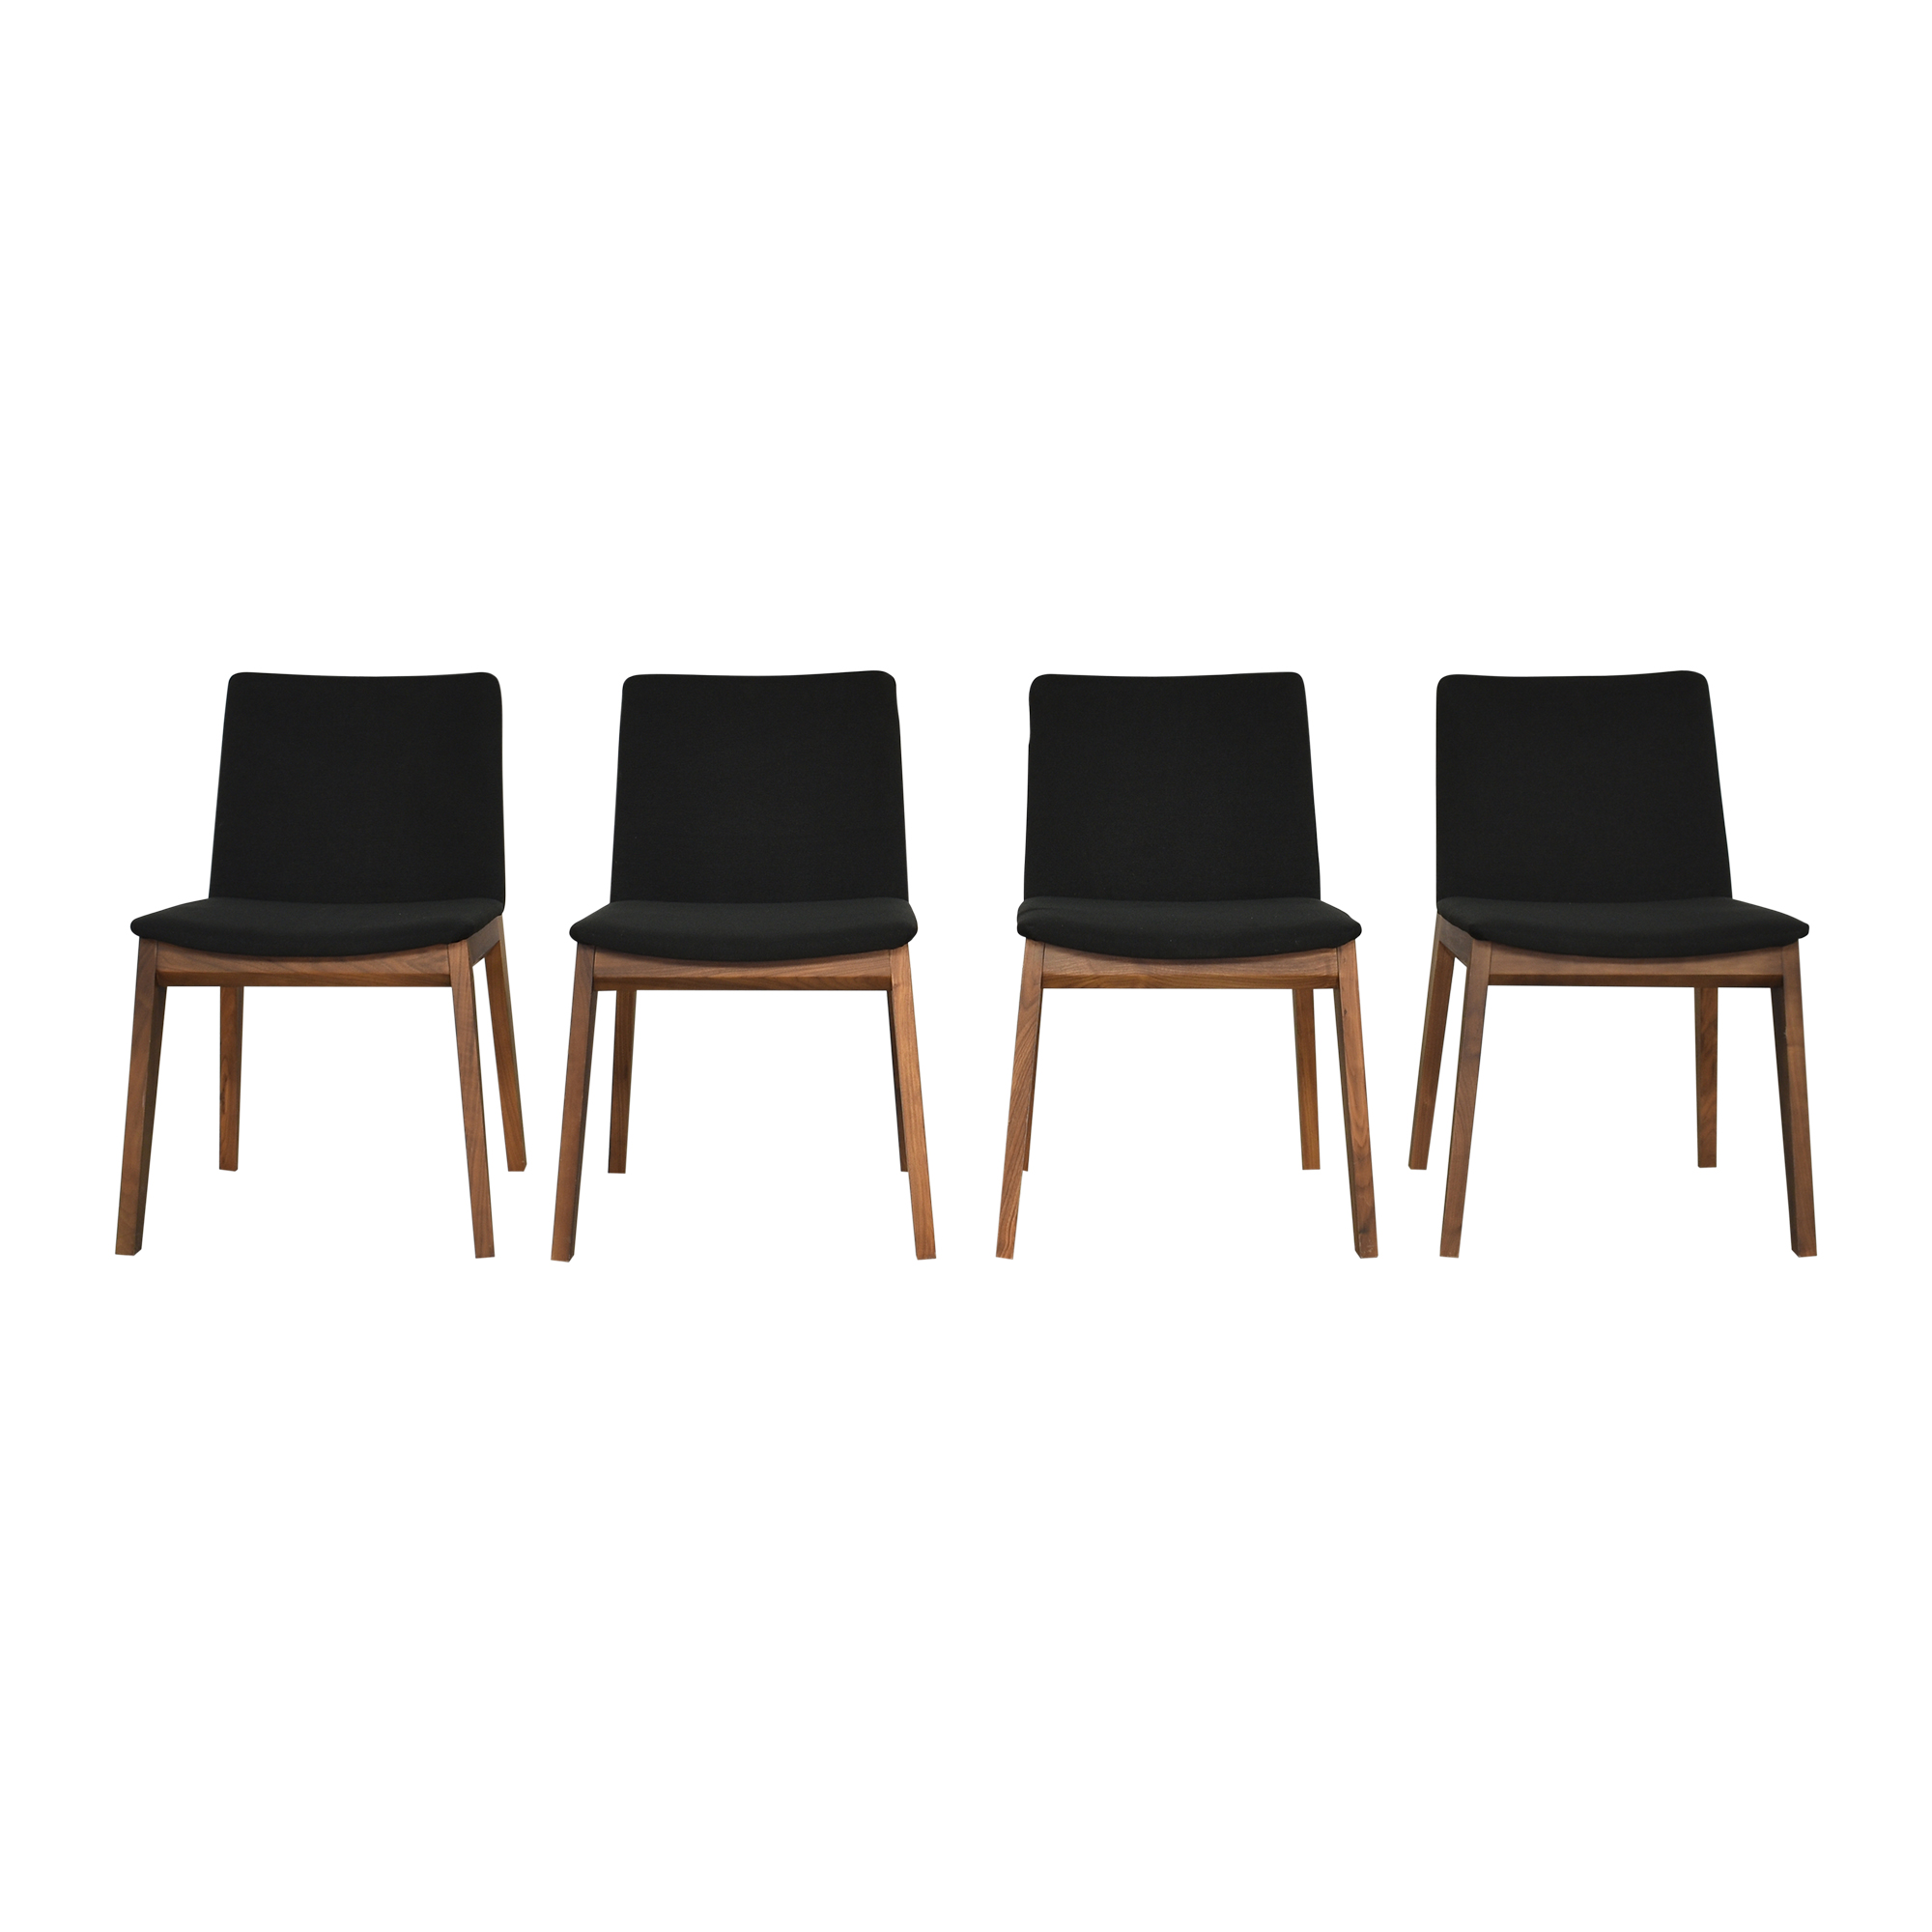 shop Moe's Home Collection Moe's Home Collection Deco Dining Chairs online